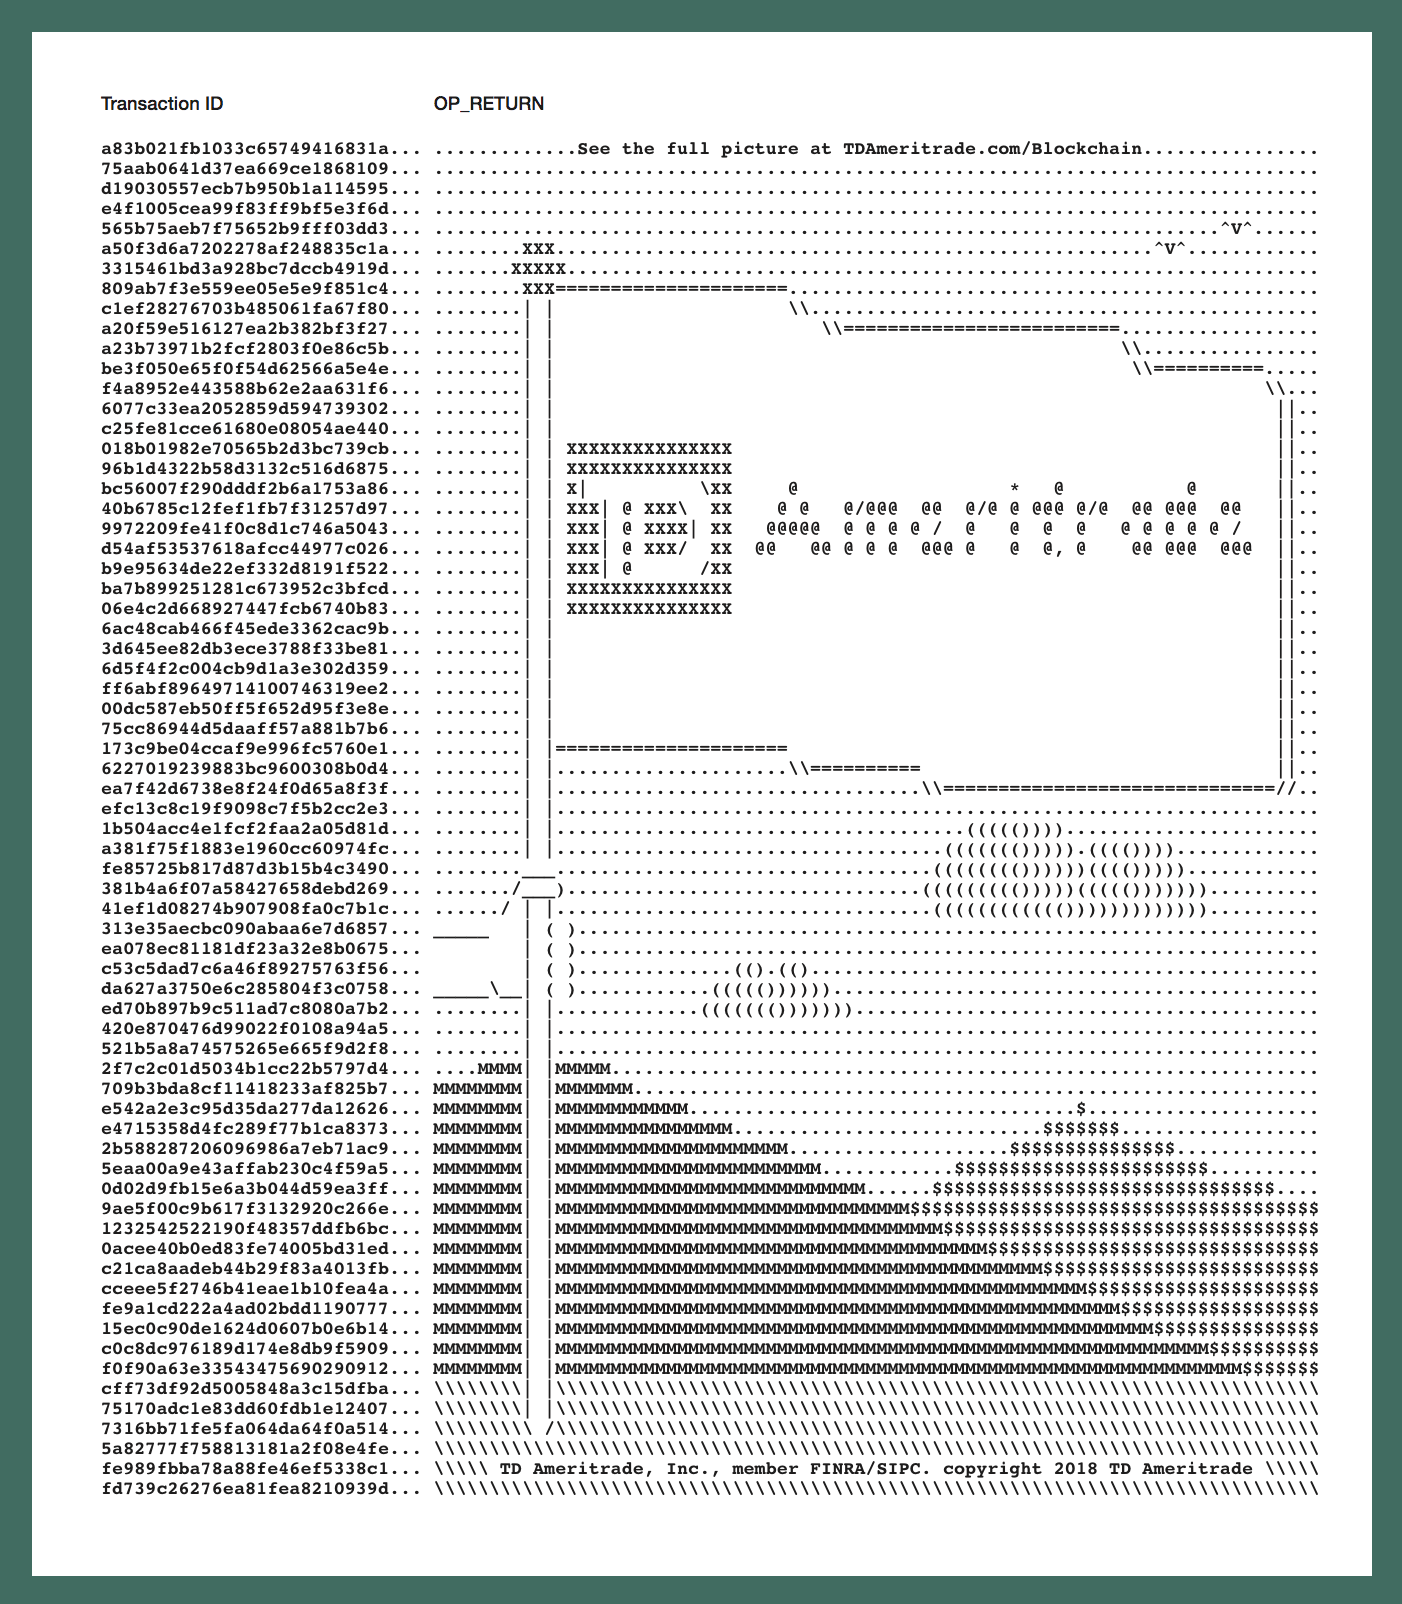 TD Ameritrade Print Ad - Greetings from the Blockchain